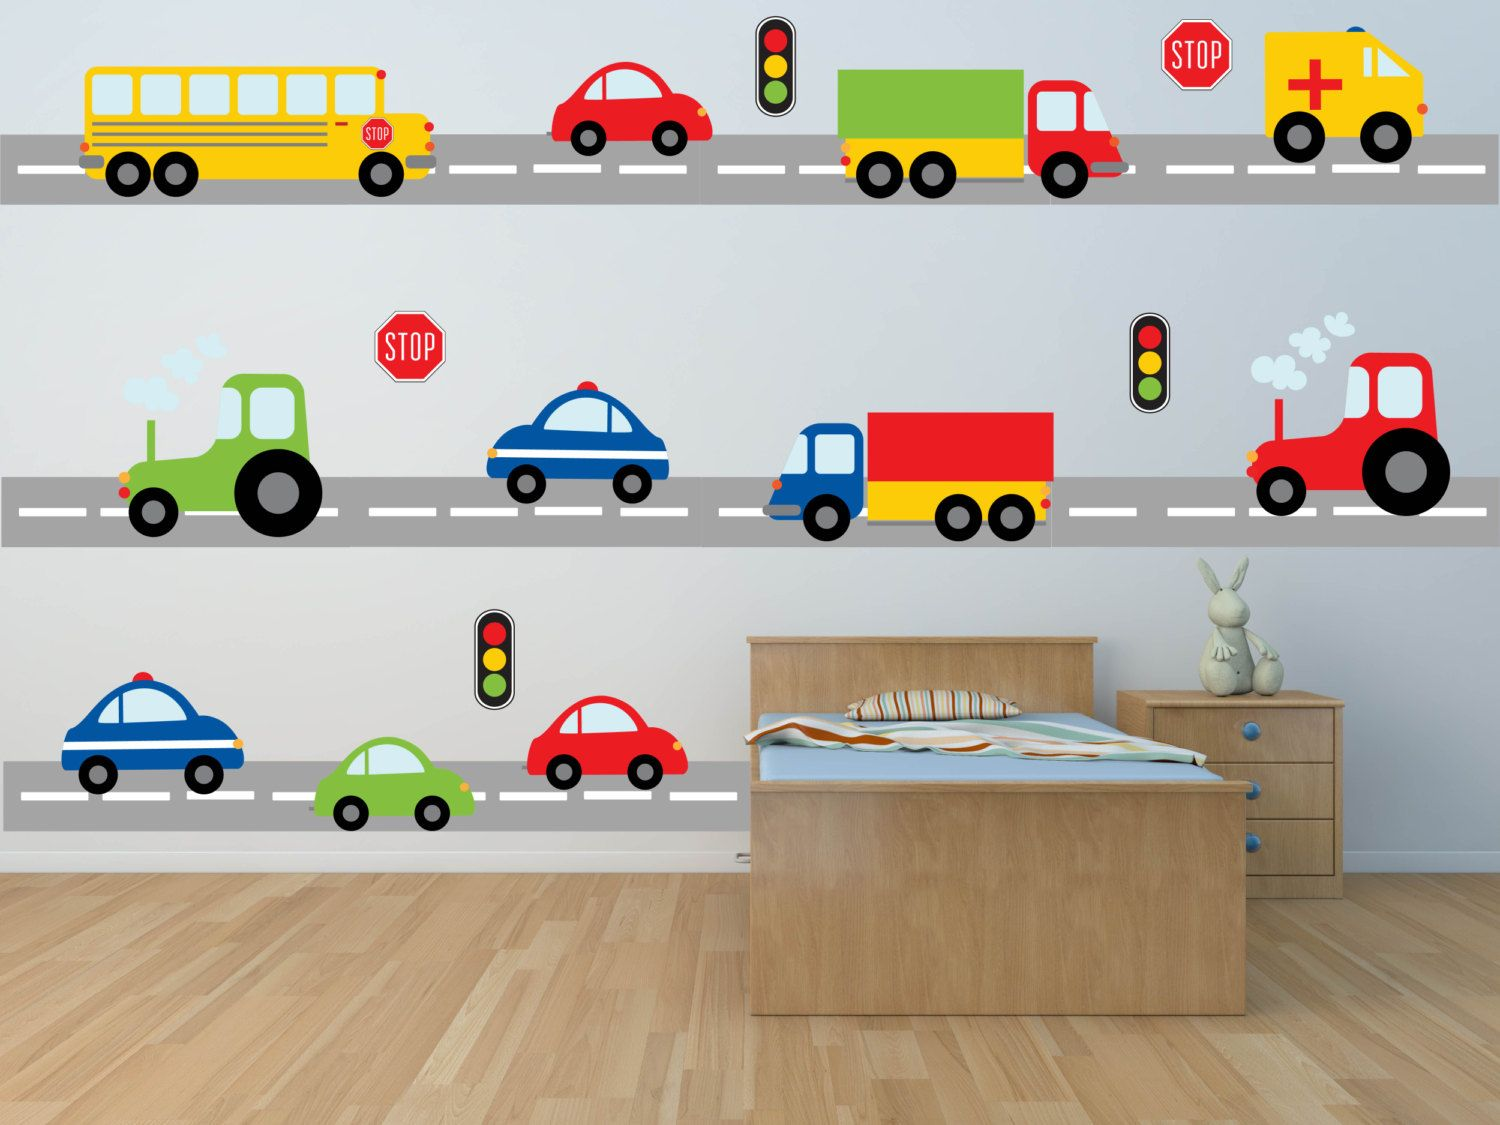 Charmant Truck Wall Decal   Construction Wall Decal   Car Wall Decal    Transportation Wall Decal   Boy Wall Decal   Nursery Wall Decal   Wall  Decals